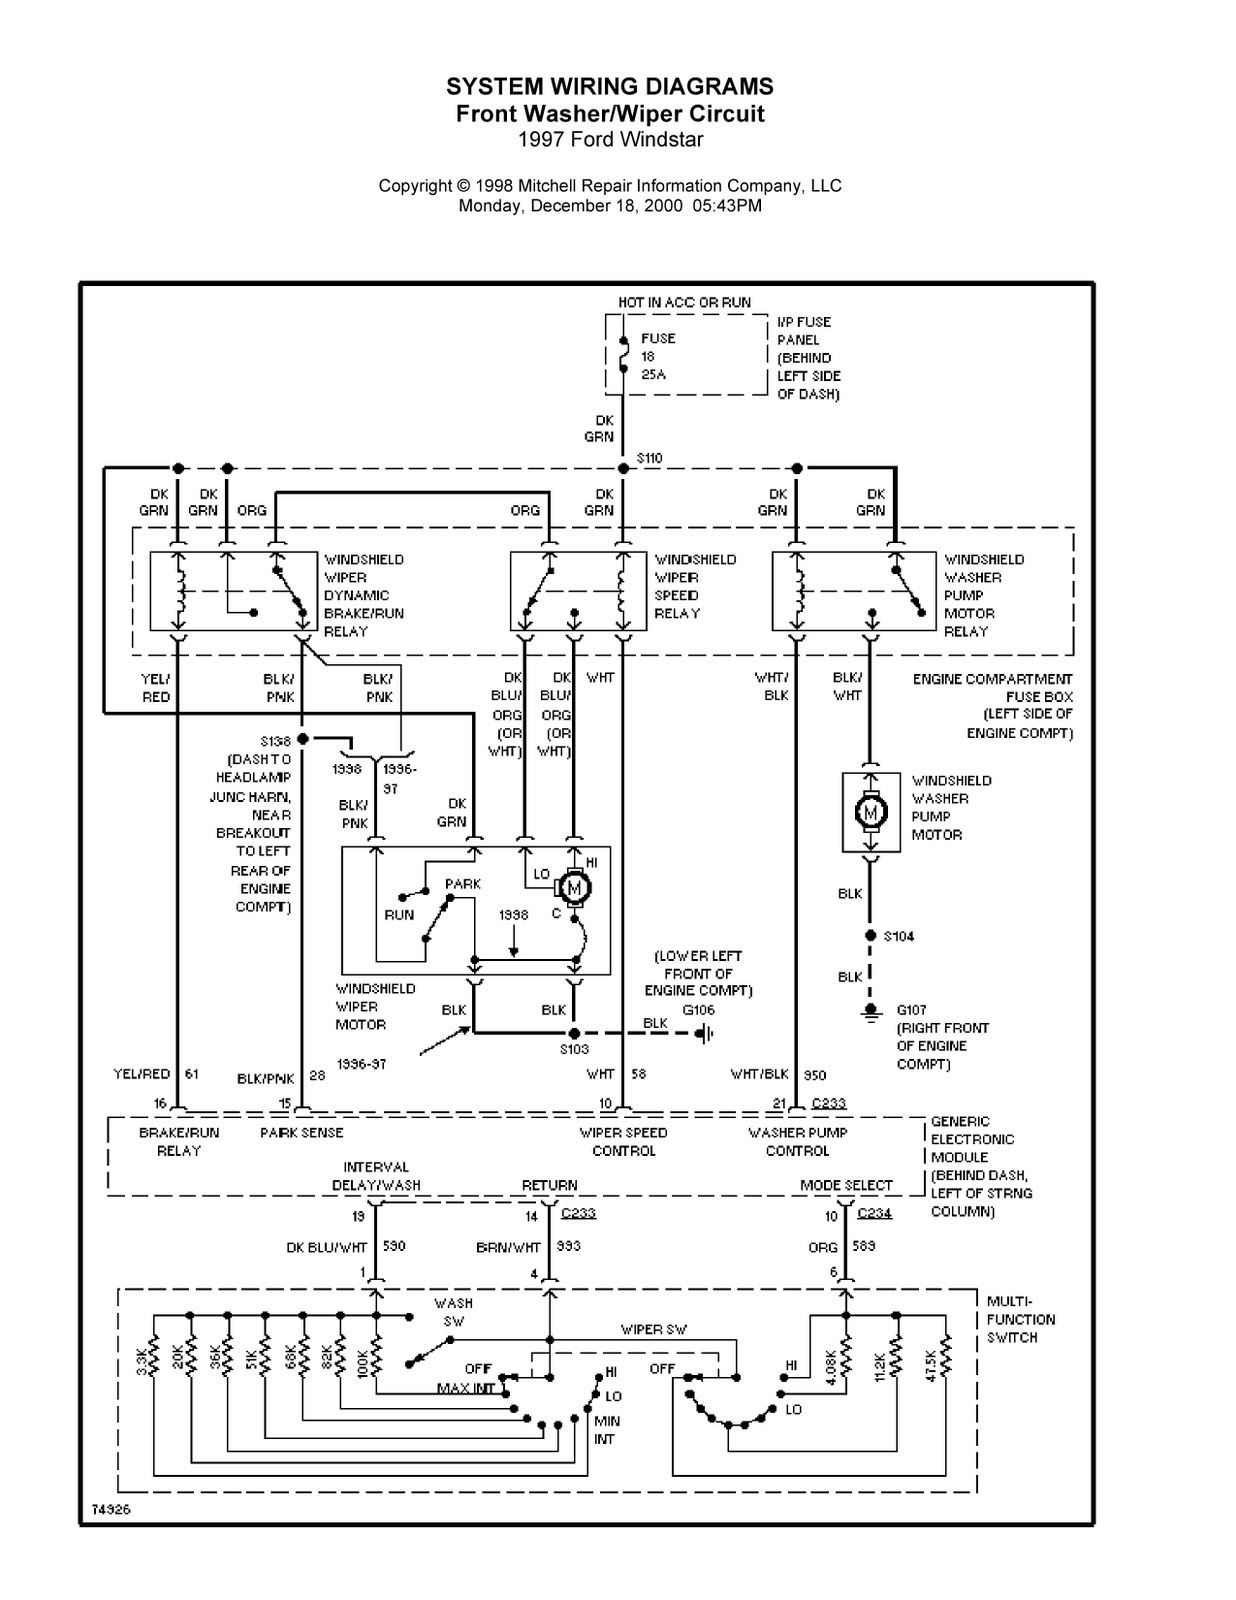 0051 1997 ford windstar complete system wiring diagrams wiring 2005 Dodge Grand Caravan Wiring Diagram at crackthecode.co